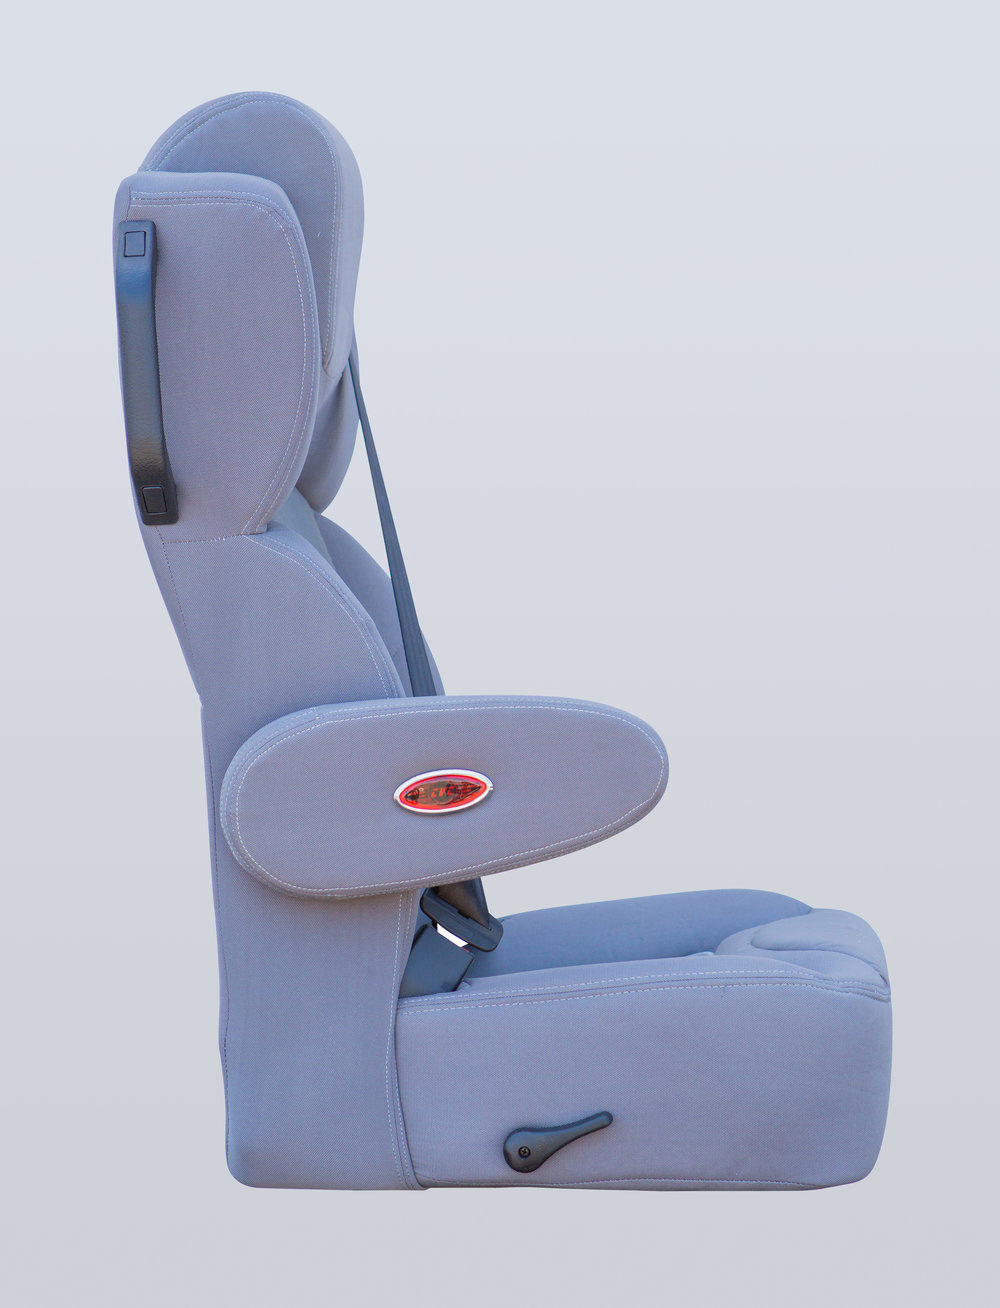 commuter seat